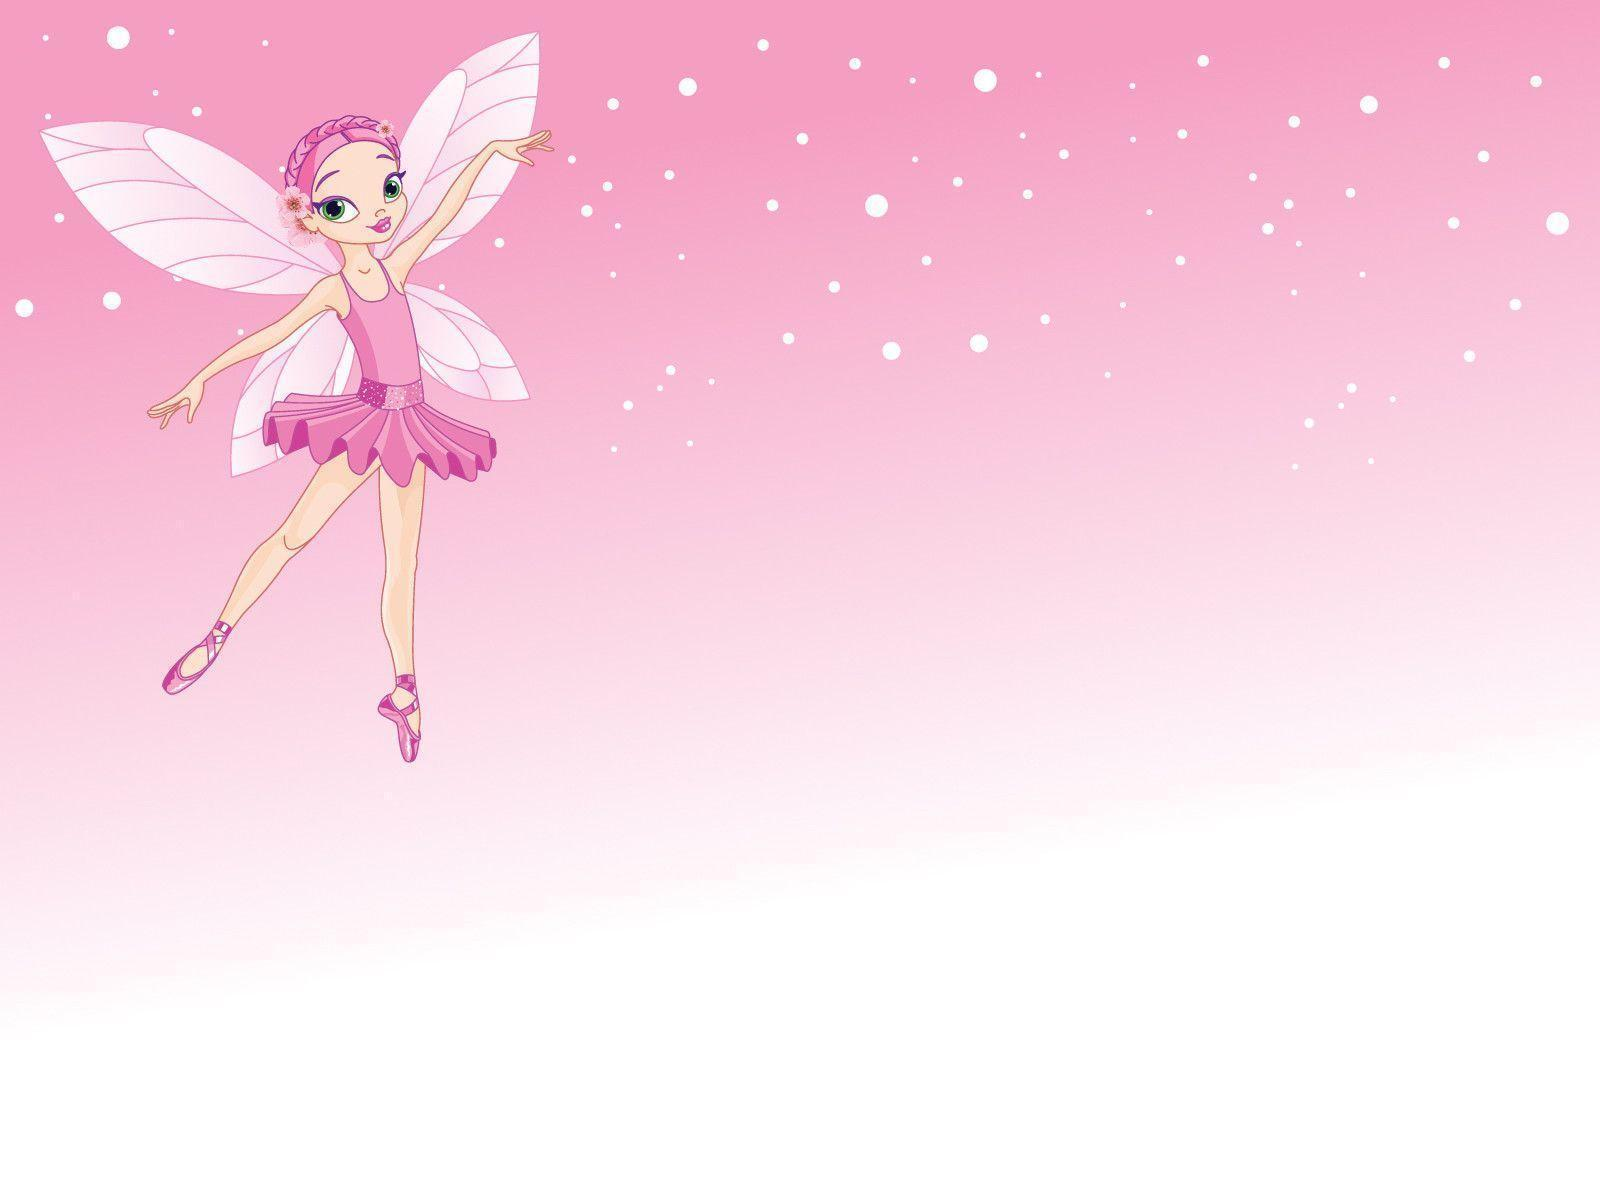 fairy computer wallpaper background - photo #35